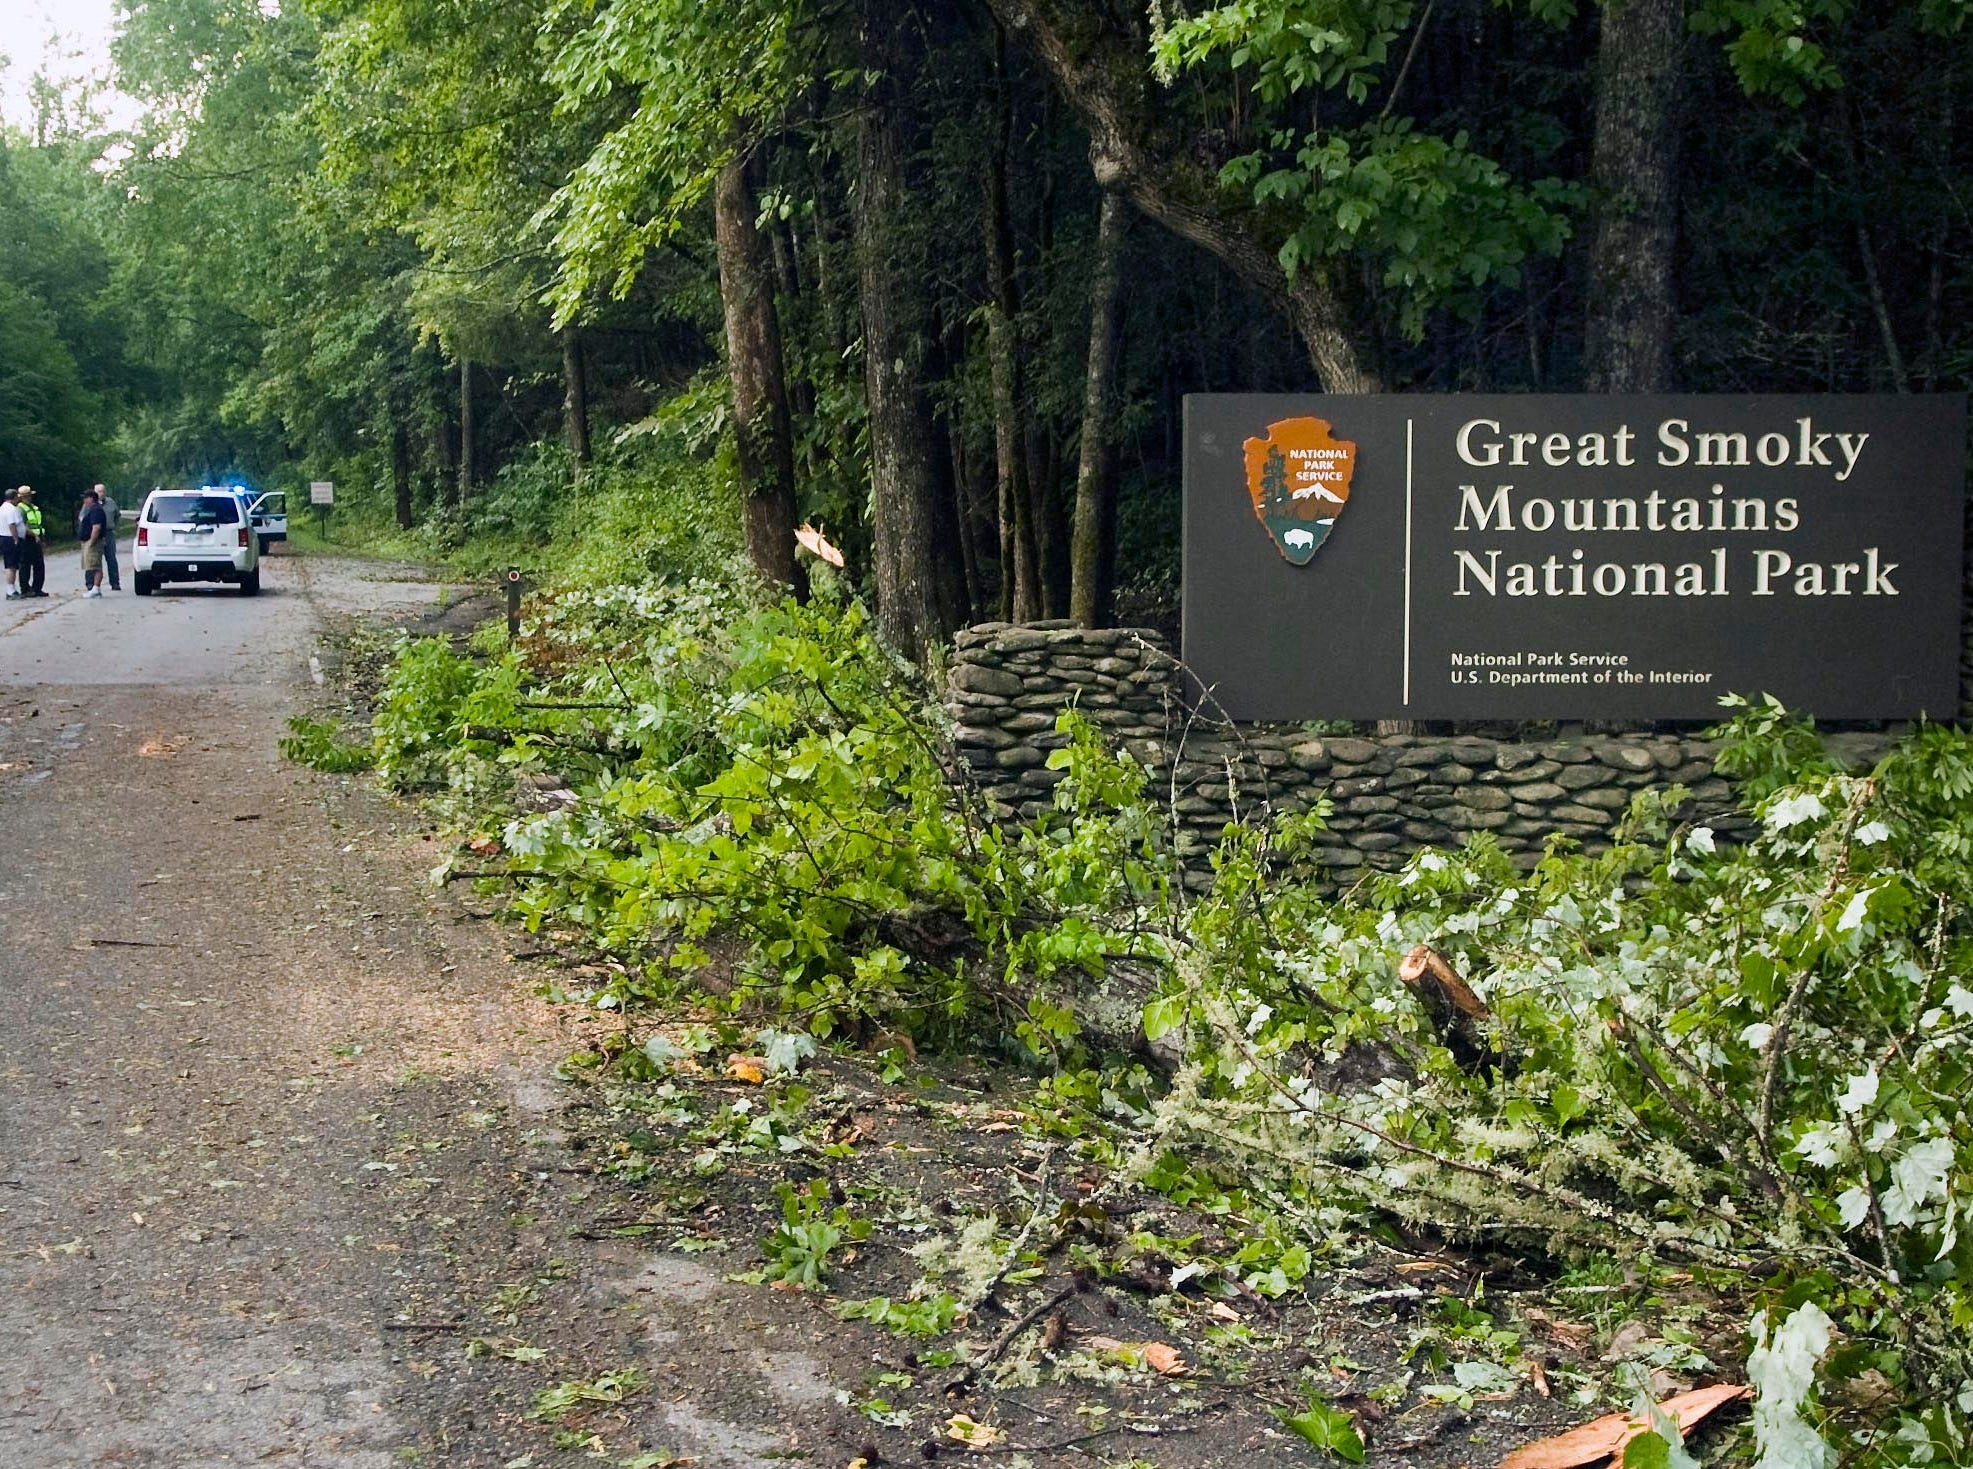 Storm damage is seen at the entrance to the Great Smoky Mountains National Park Friday in Townsend. Two park visitors were killed and others injured by a violent storm that swept through the Cades Cove area Thursday evening. (J. Miles Cary/News Sentinel)